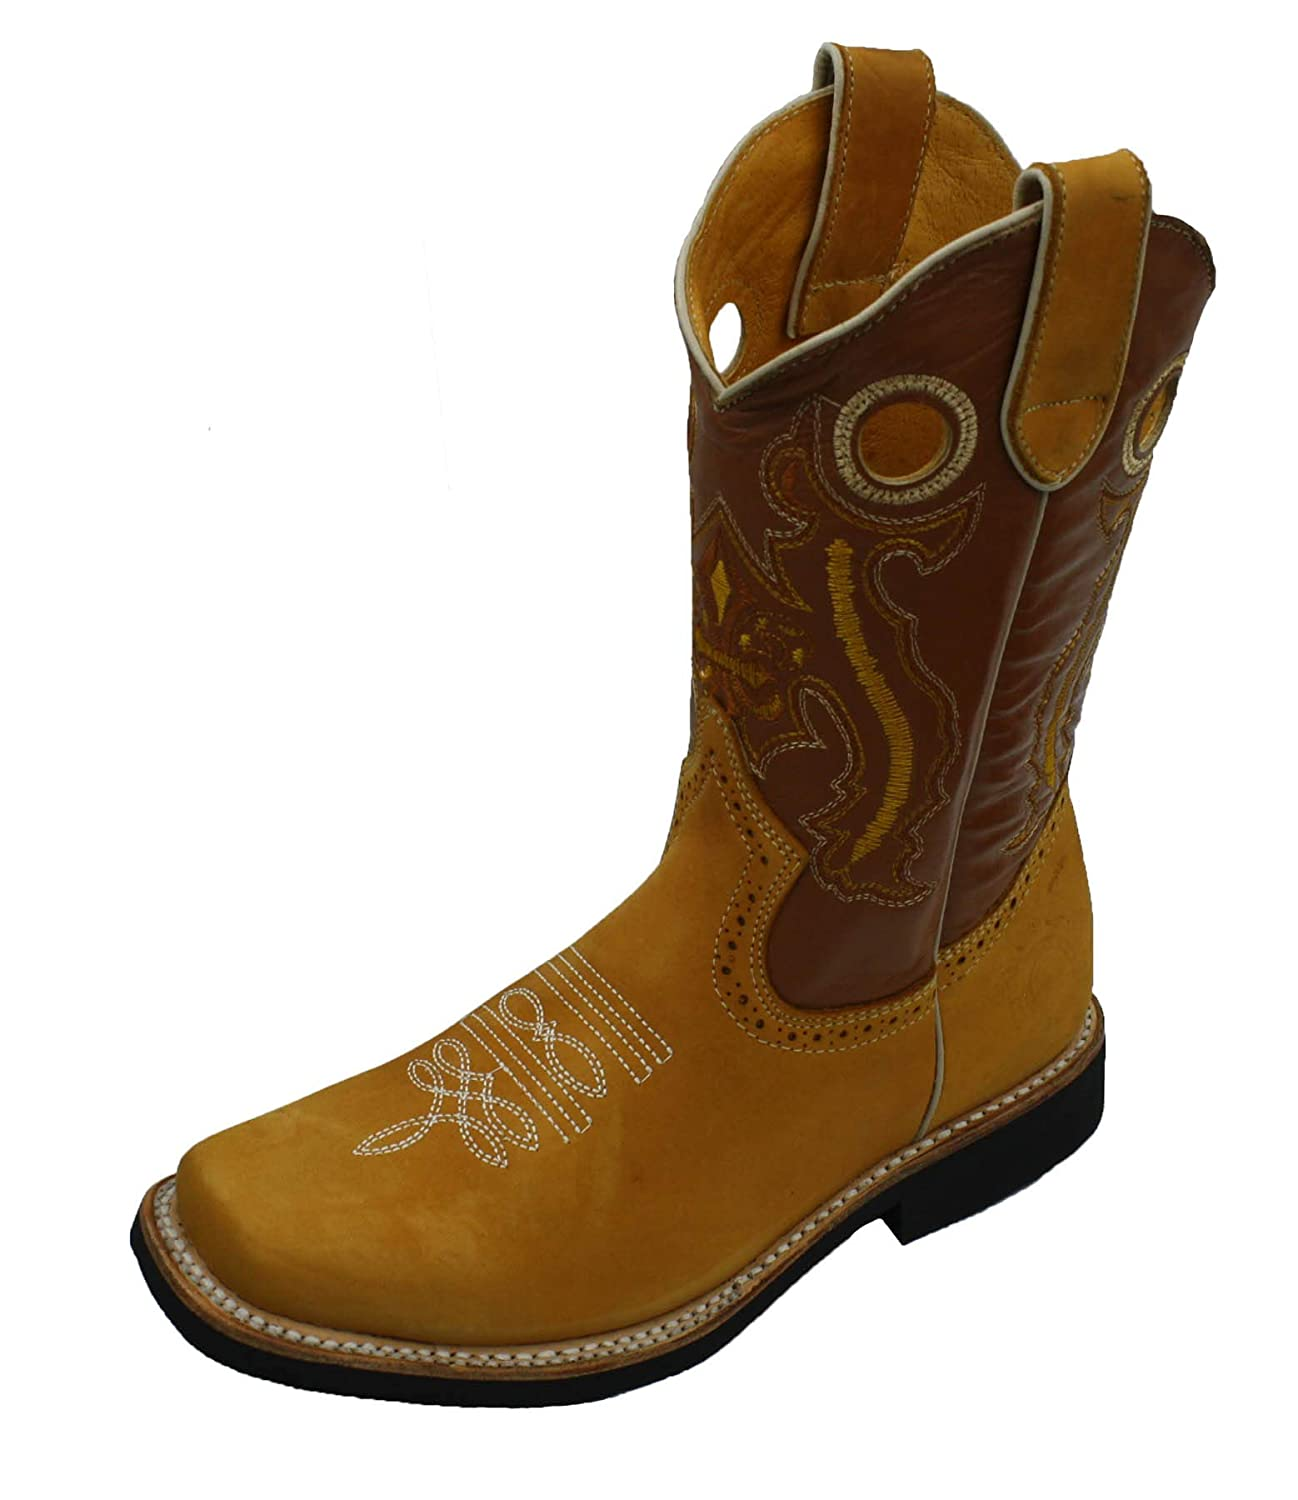 9d10a748aeb Children Youth Sizes Cowboy Boots Leather Square Toe Rodeo Boys Western  Plain